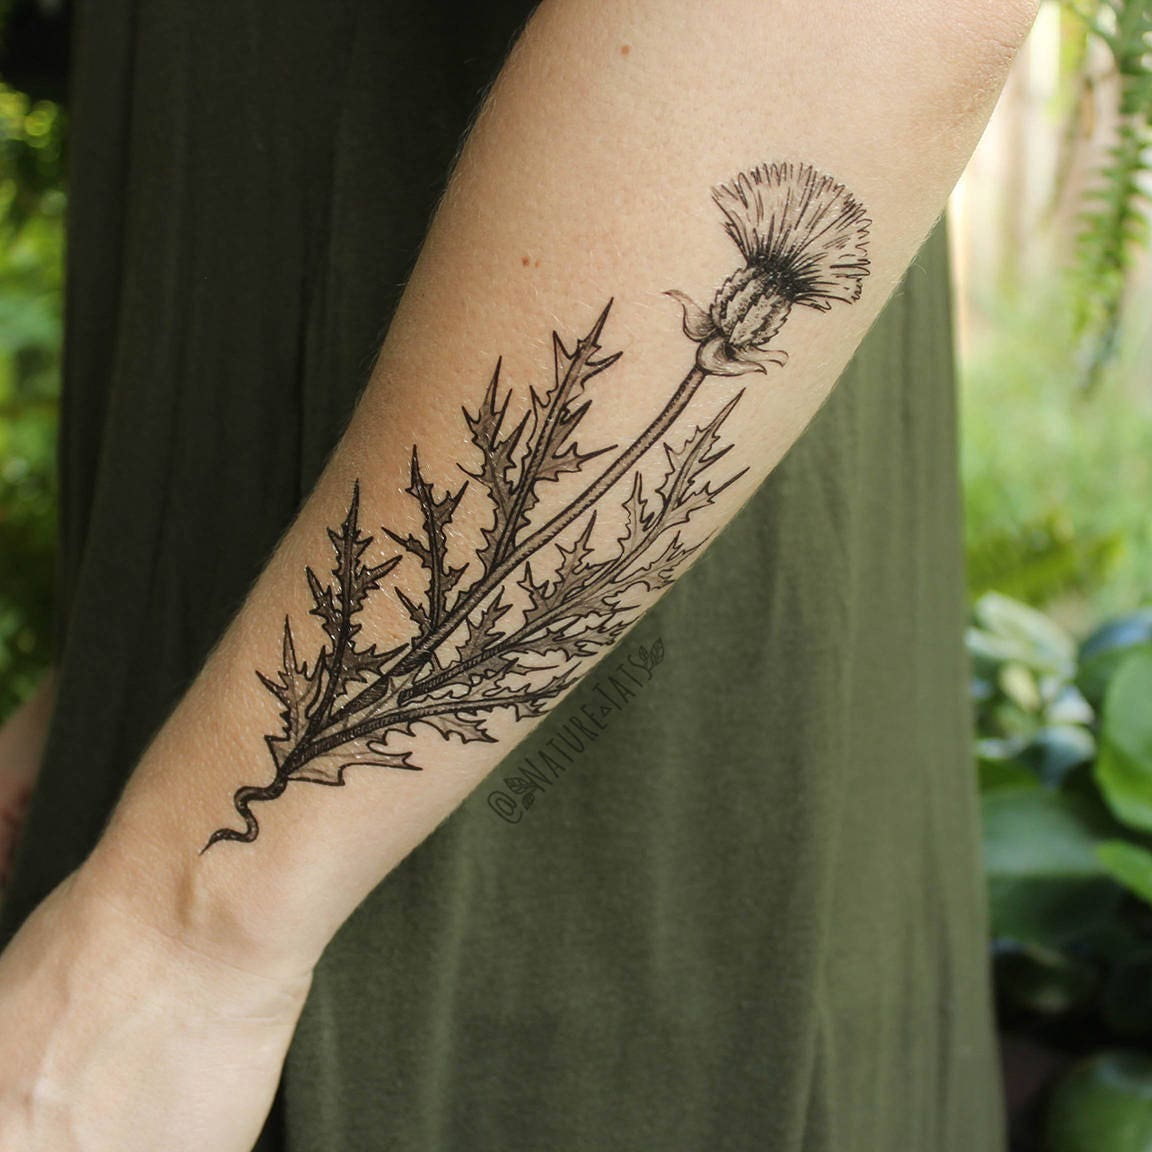 purple thistle flower temporary tattoo black line drawing nature tattoo. Black Bedroom Furniture Sets. Home Design Ideas